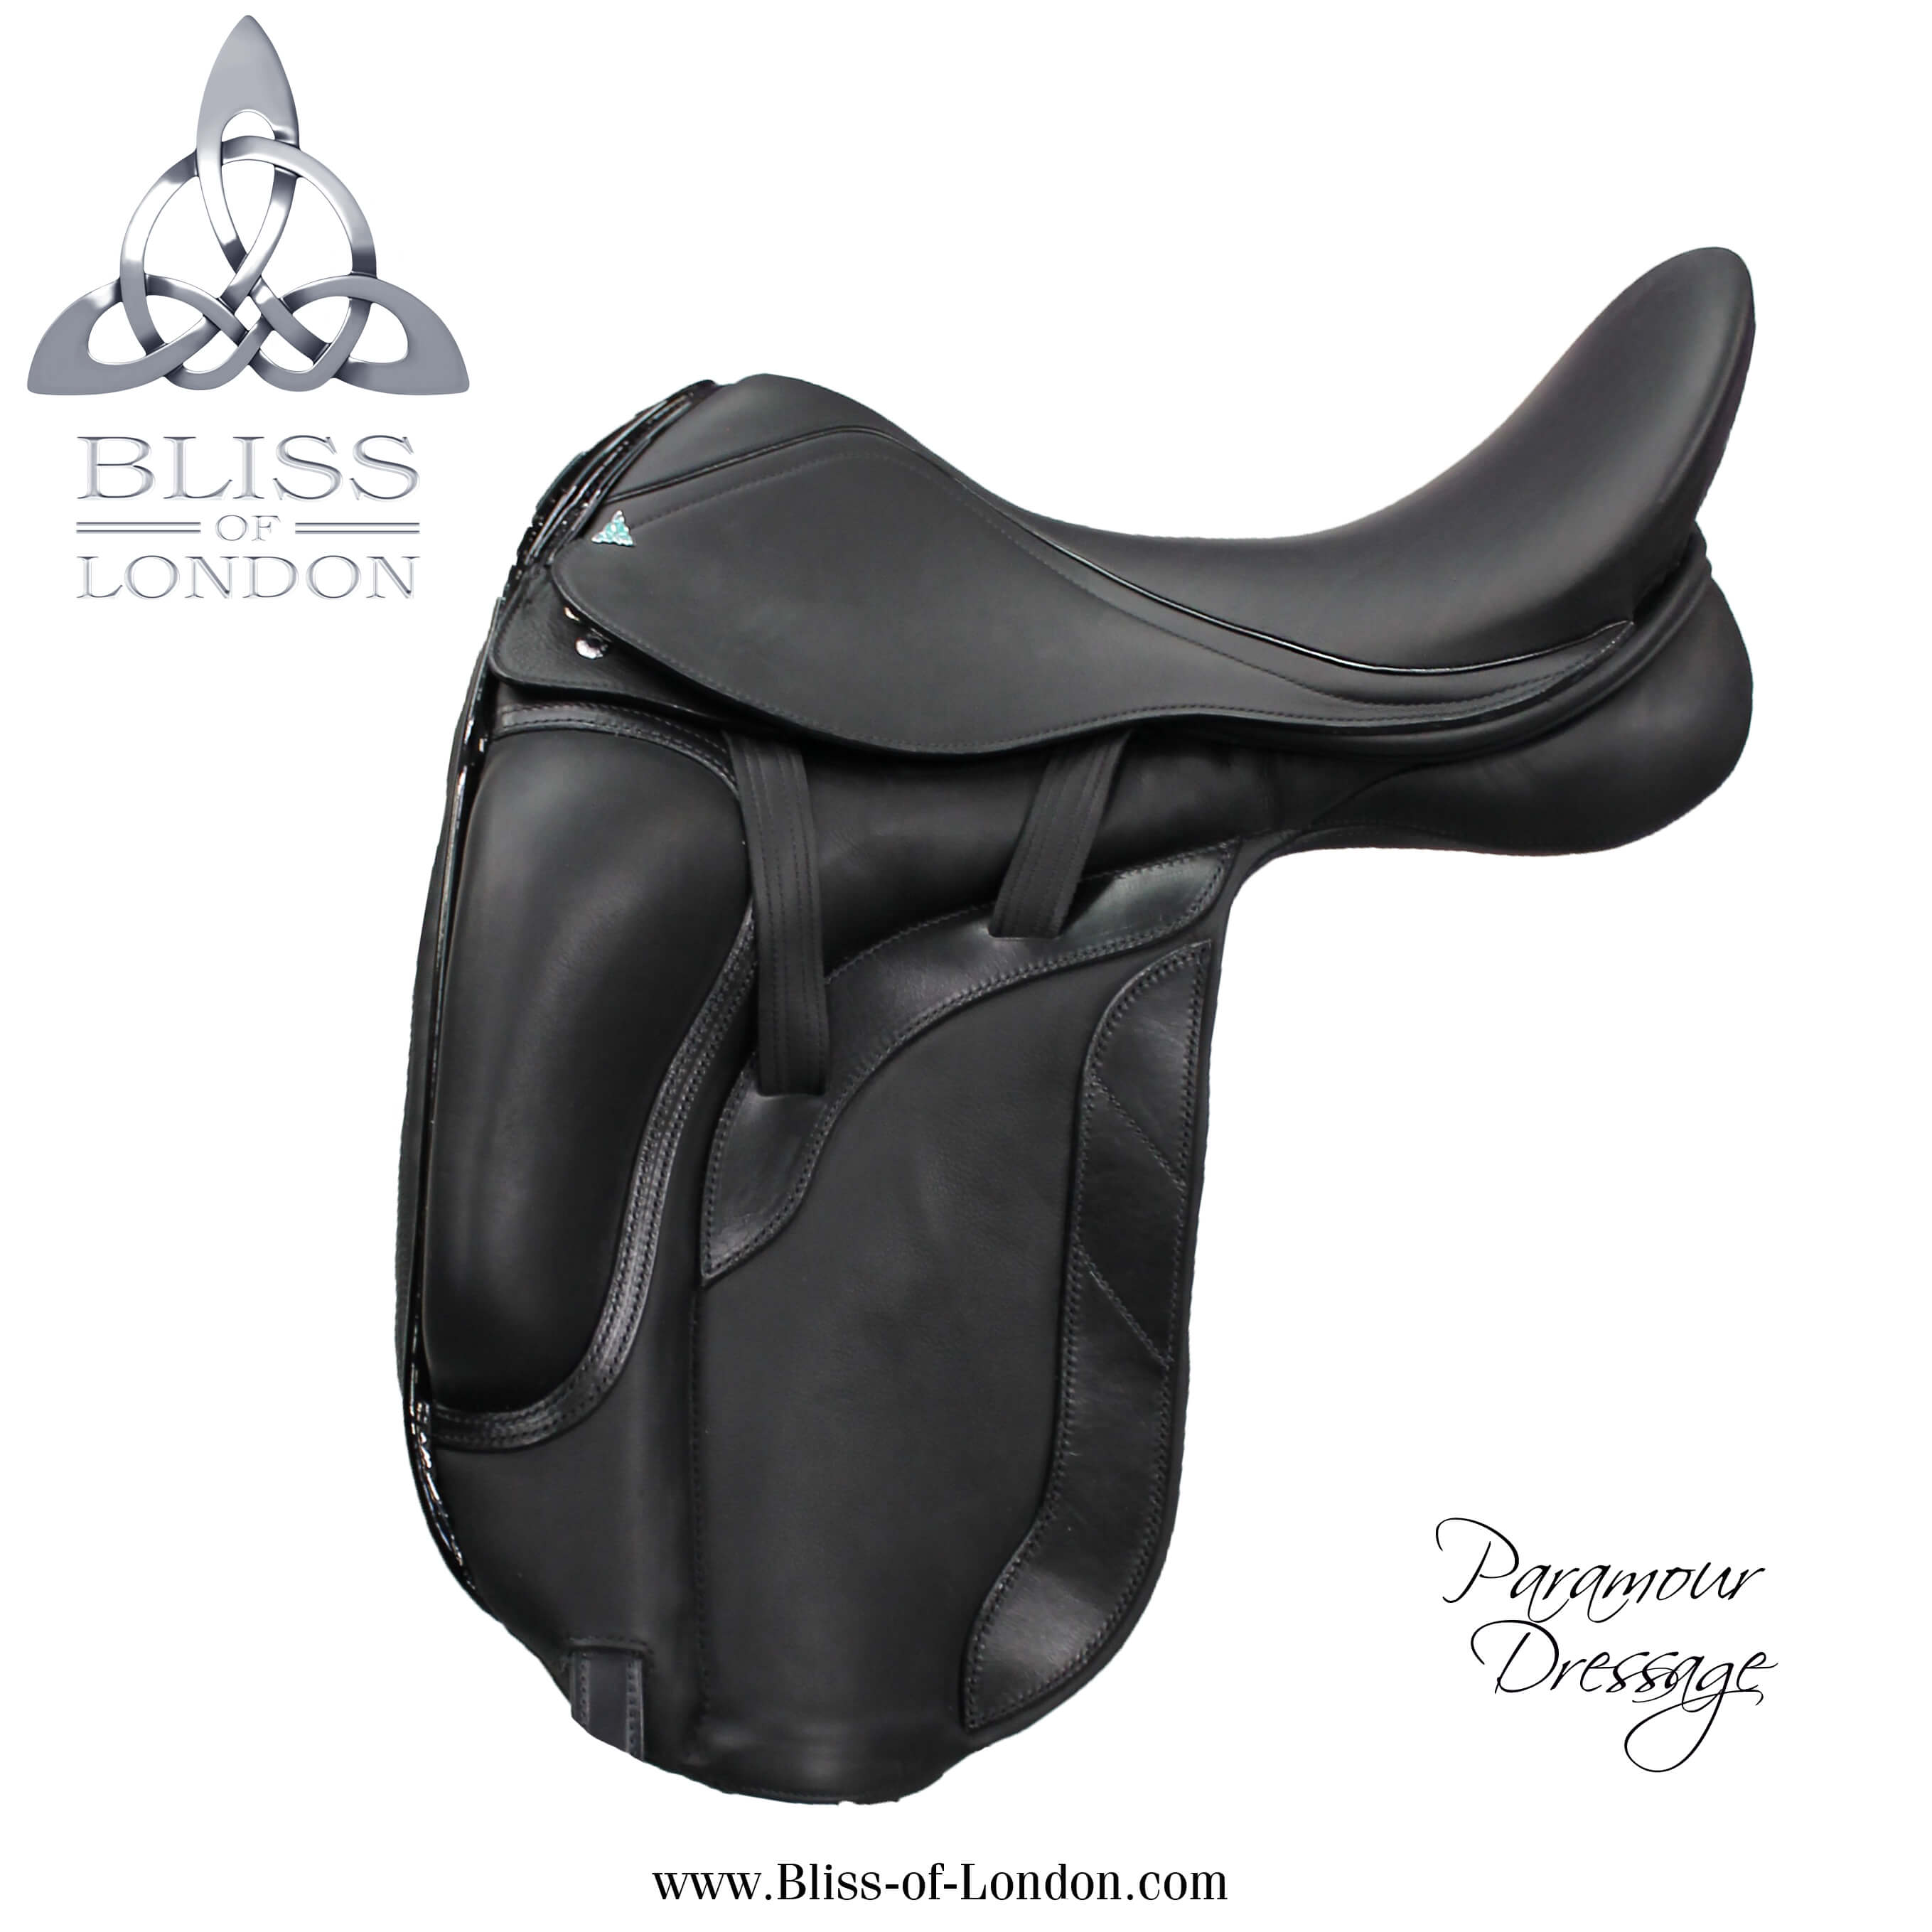 735 - Paramour Dressage Patent Halfmoon Cantle Badge side